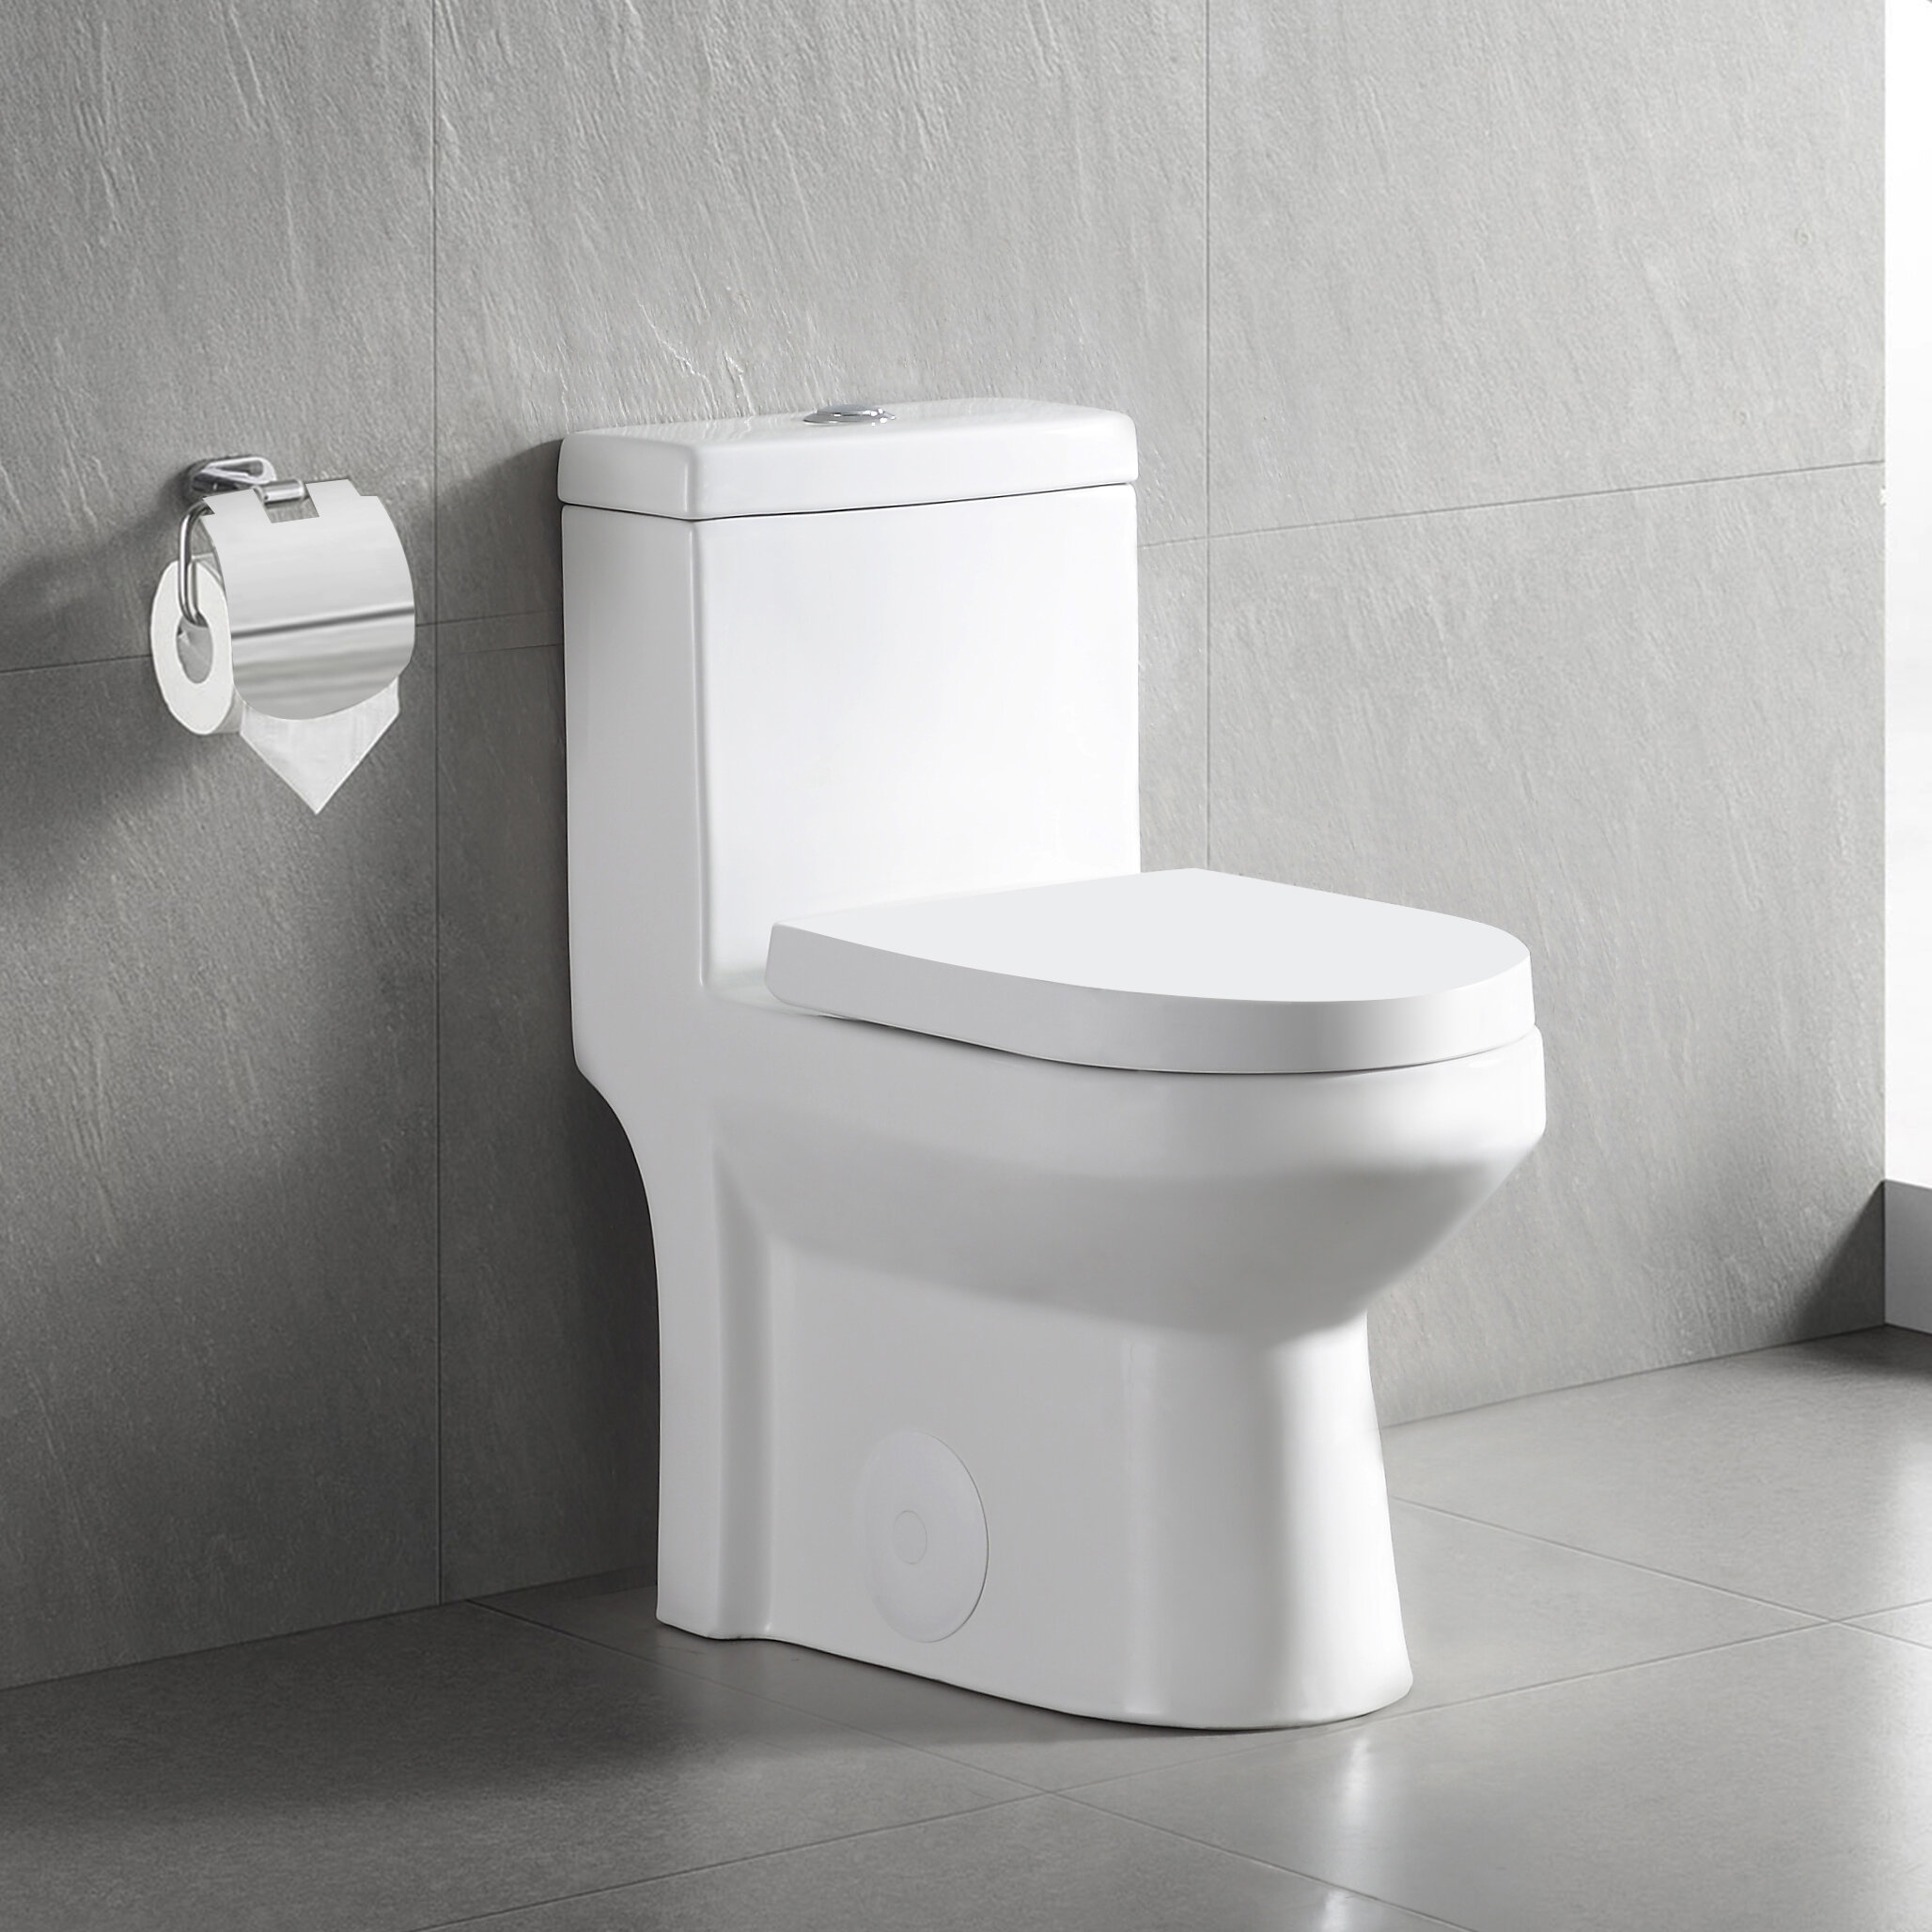 DeerValley Dual-Flush Elongated One-Piece Toilet (Seat Included) & Reviews  | Wayfair